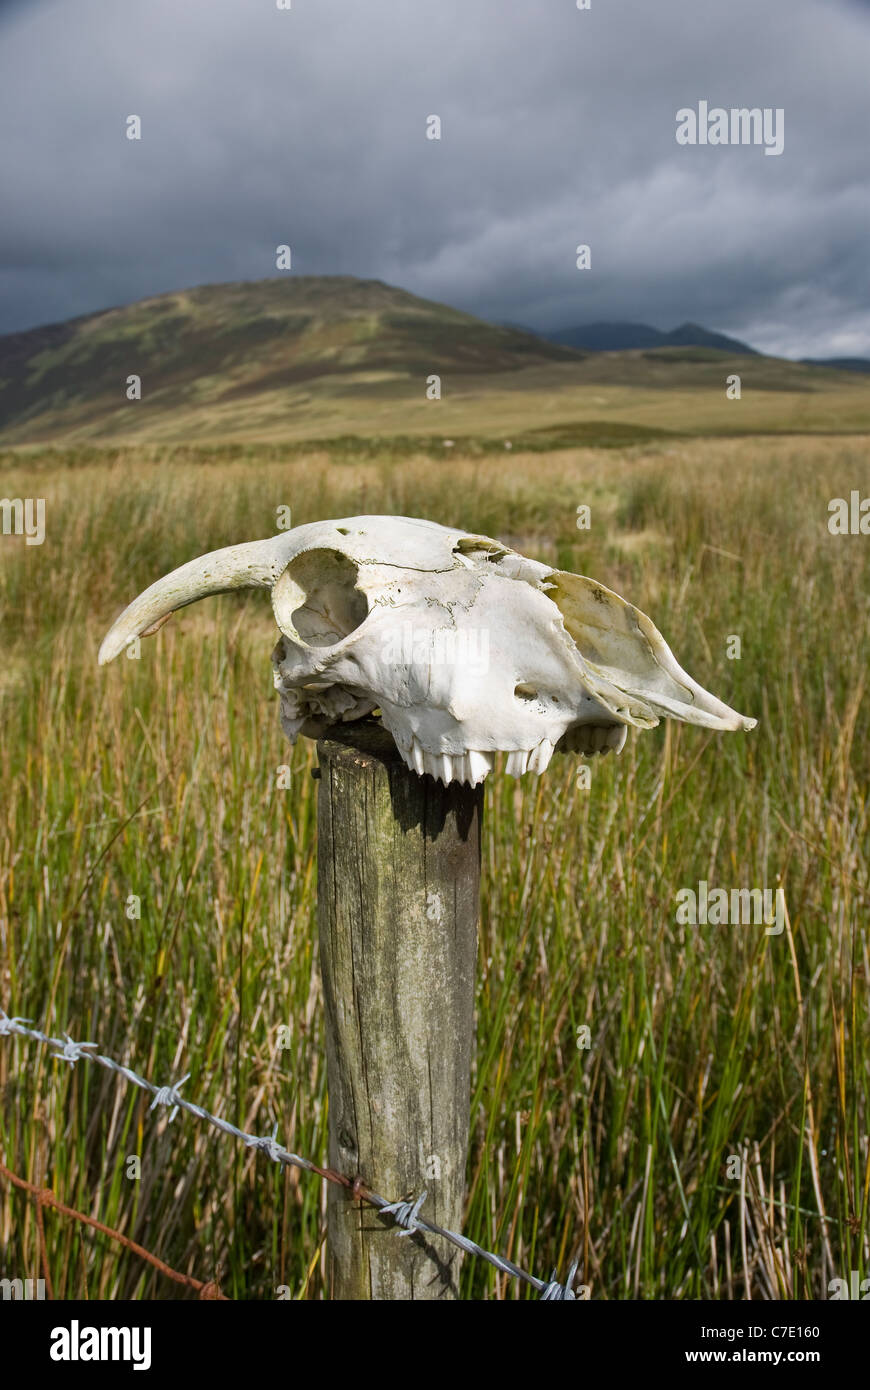 Skull of a sheep on a wooden fence post with barbed wire. - Stock Image